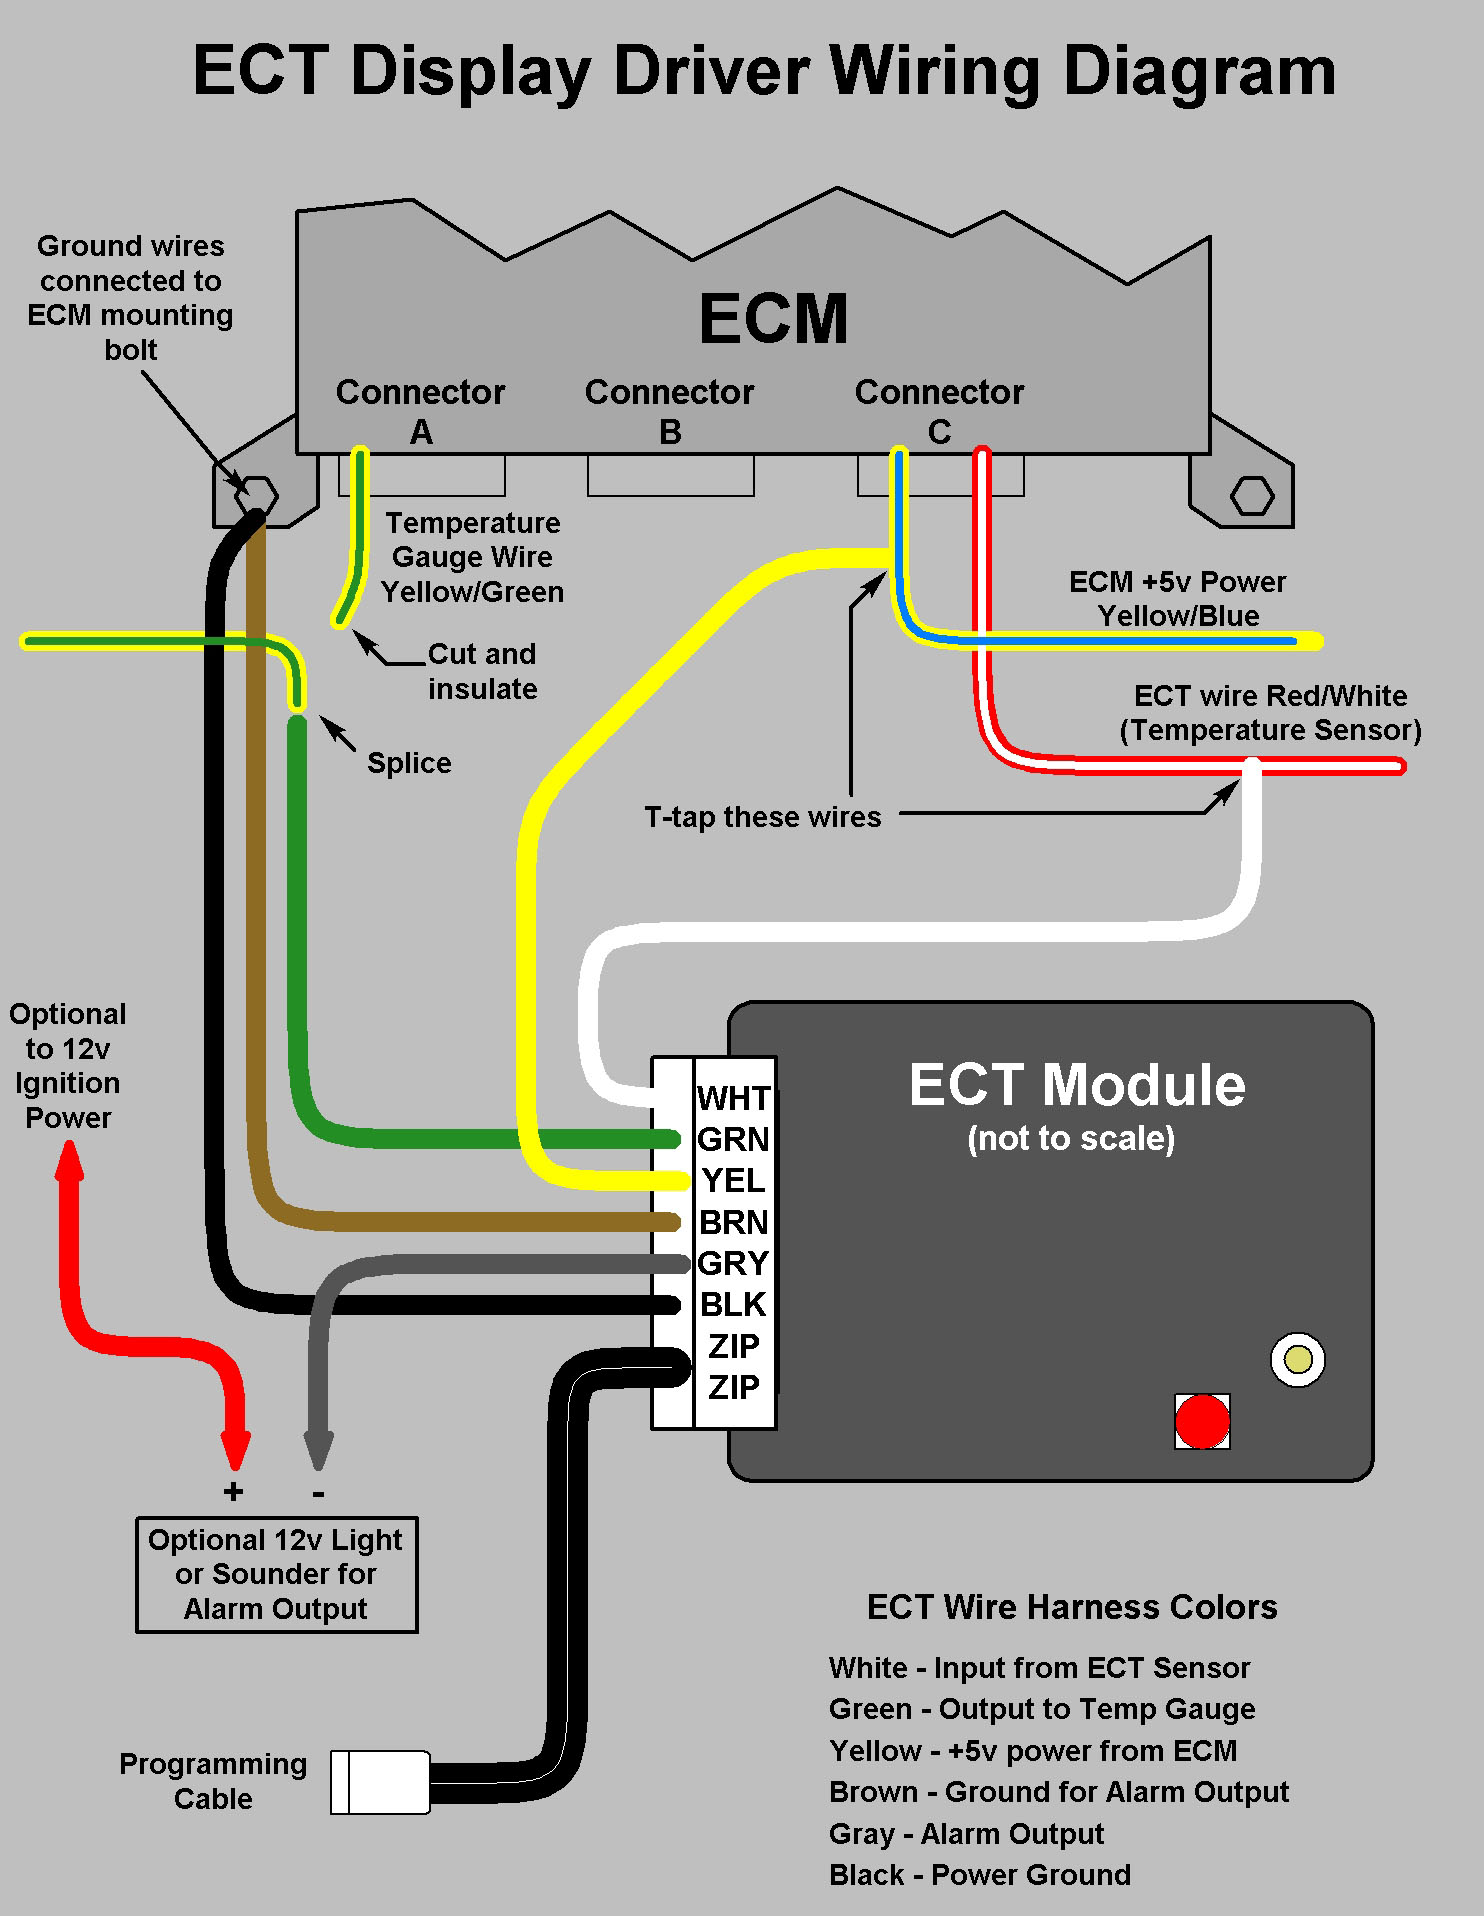 ECT wiring diagram ems wiring diagram management system \u2022 wiring diagrams j squared co edison plug wiring diagram at fashall.co